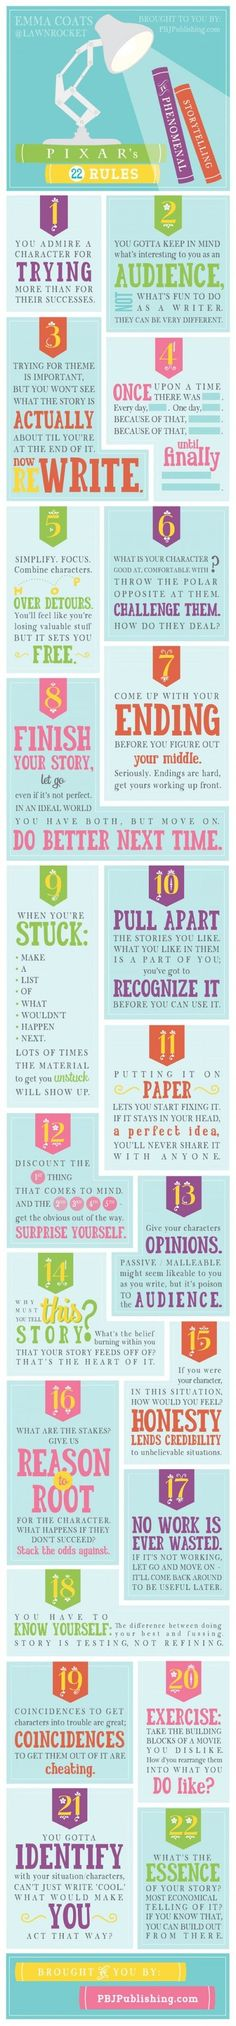 Pixar's Storytelling Rules (Grand Read)